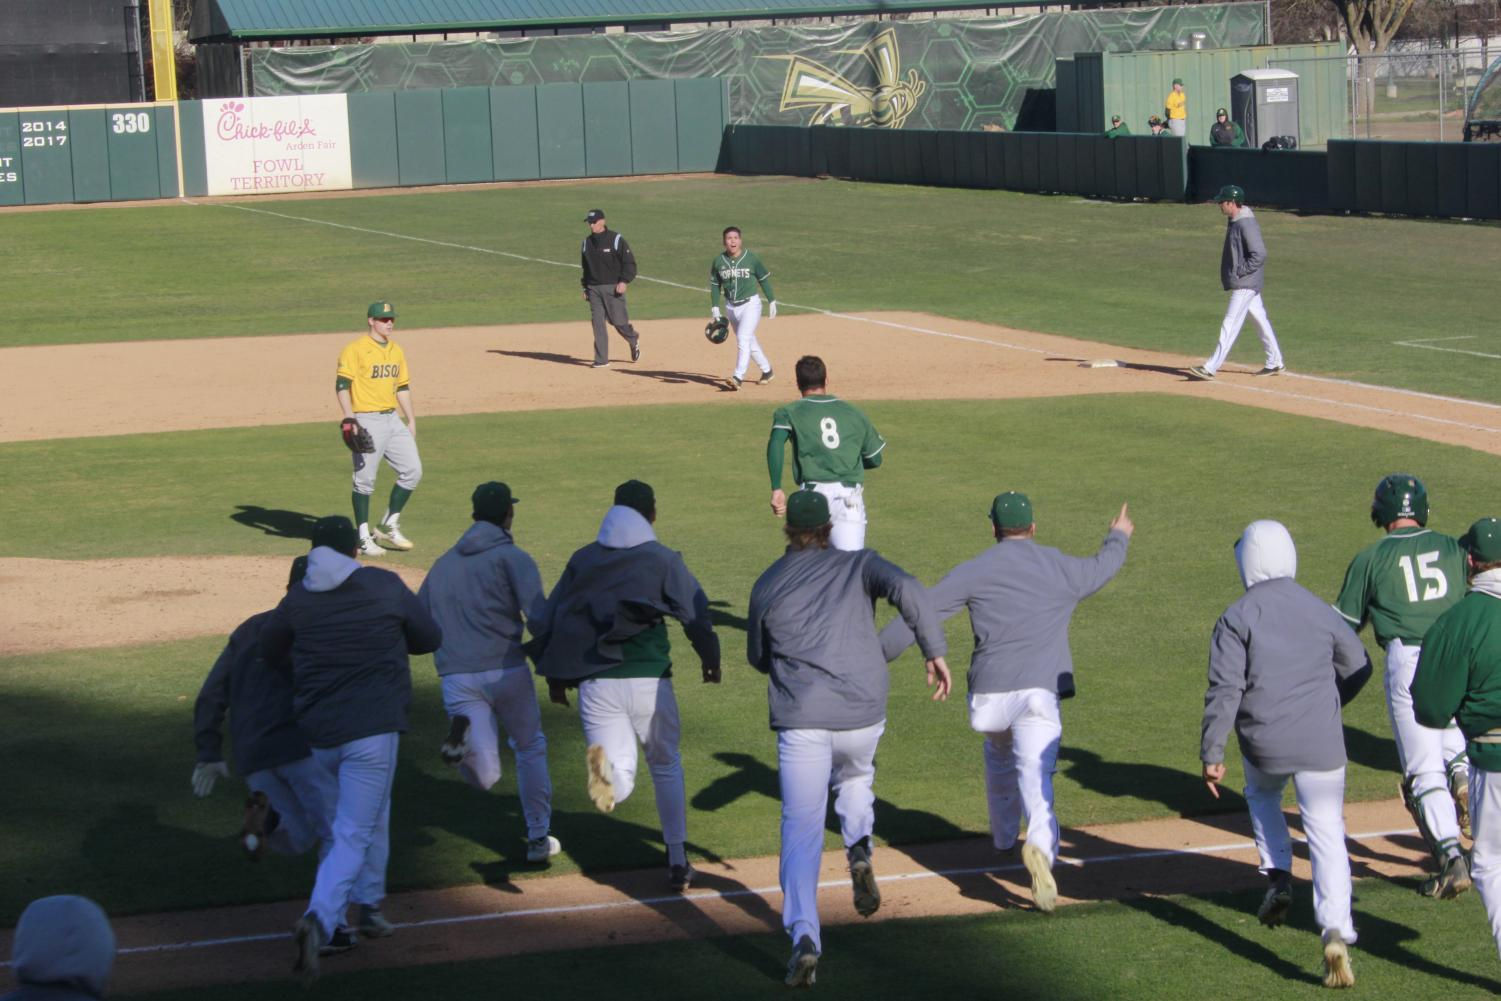 Sophomore infielder Nick Iwasa (top center) shouts in excitement after hitting a walk-off single in a 2-1 win over North Dakota St. on Sunday, Feb. 17 at John Smith Field. The Hornets swept the doubleheader to win the season-opening series.